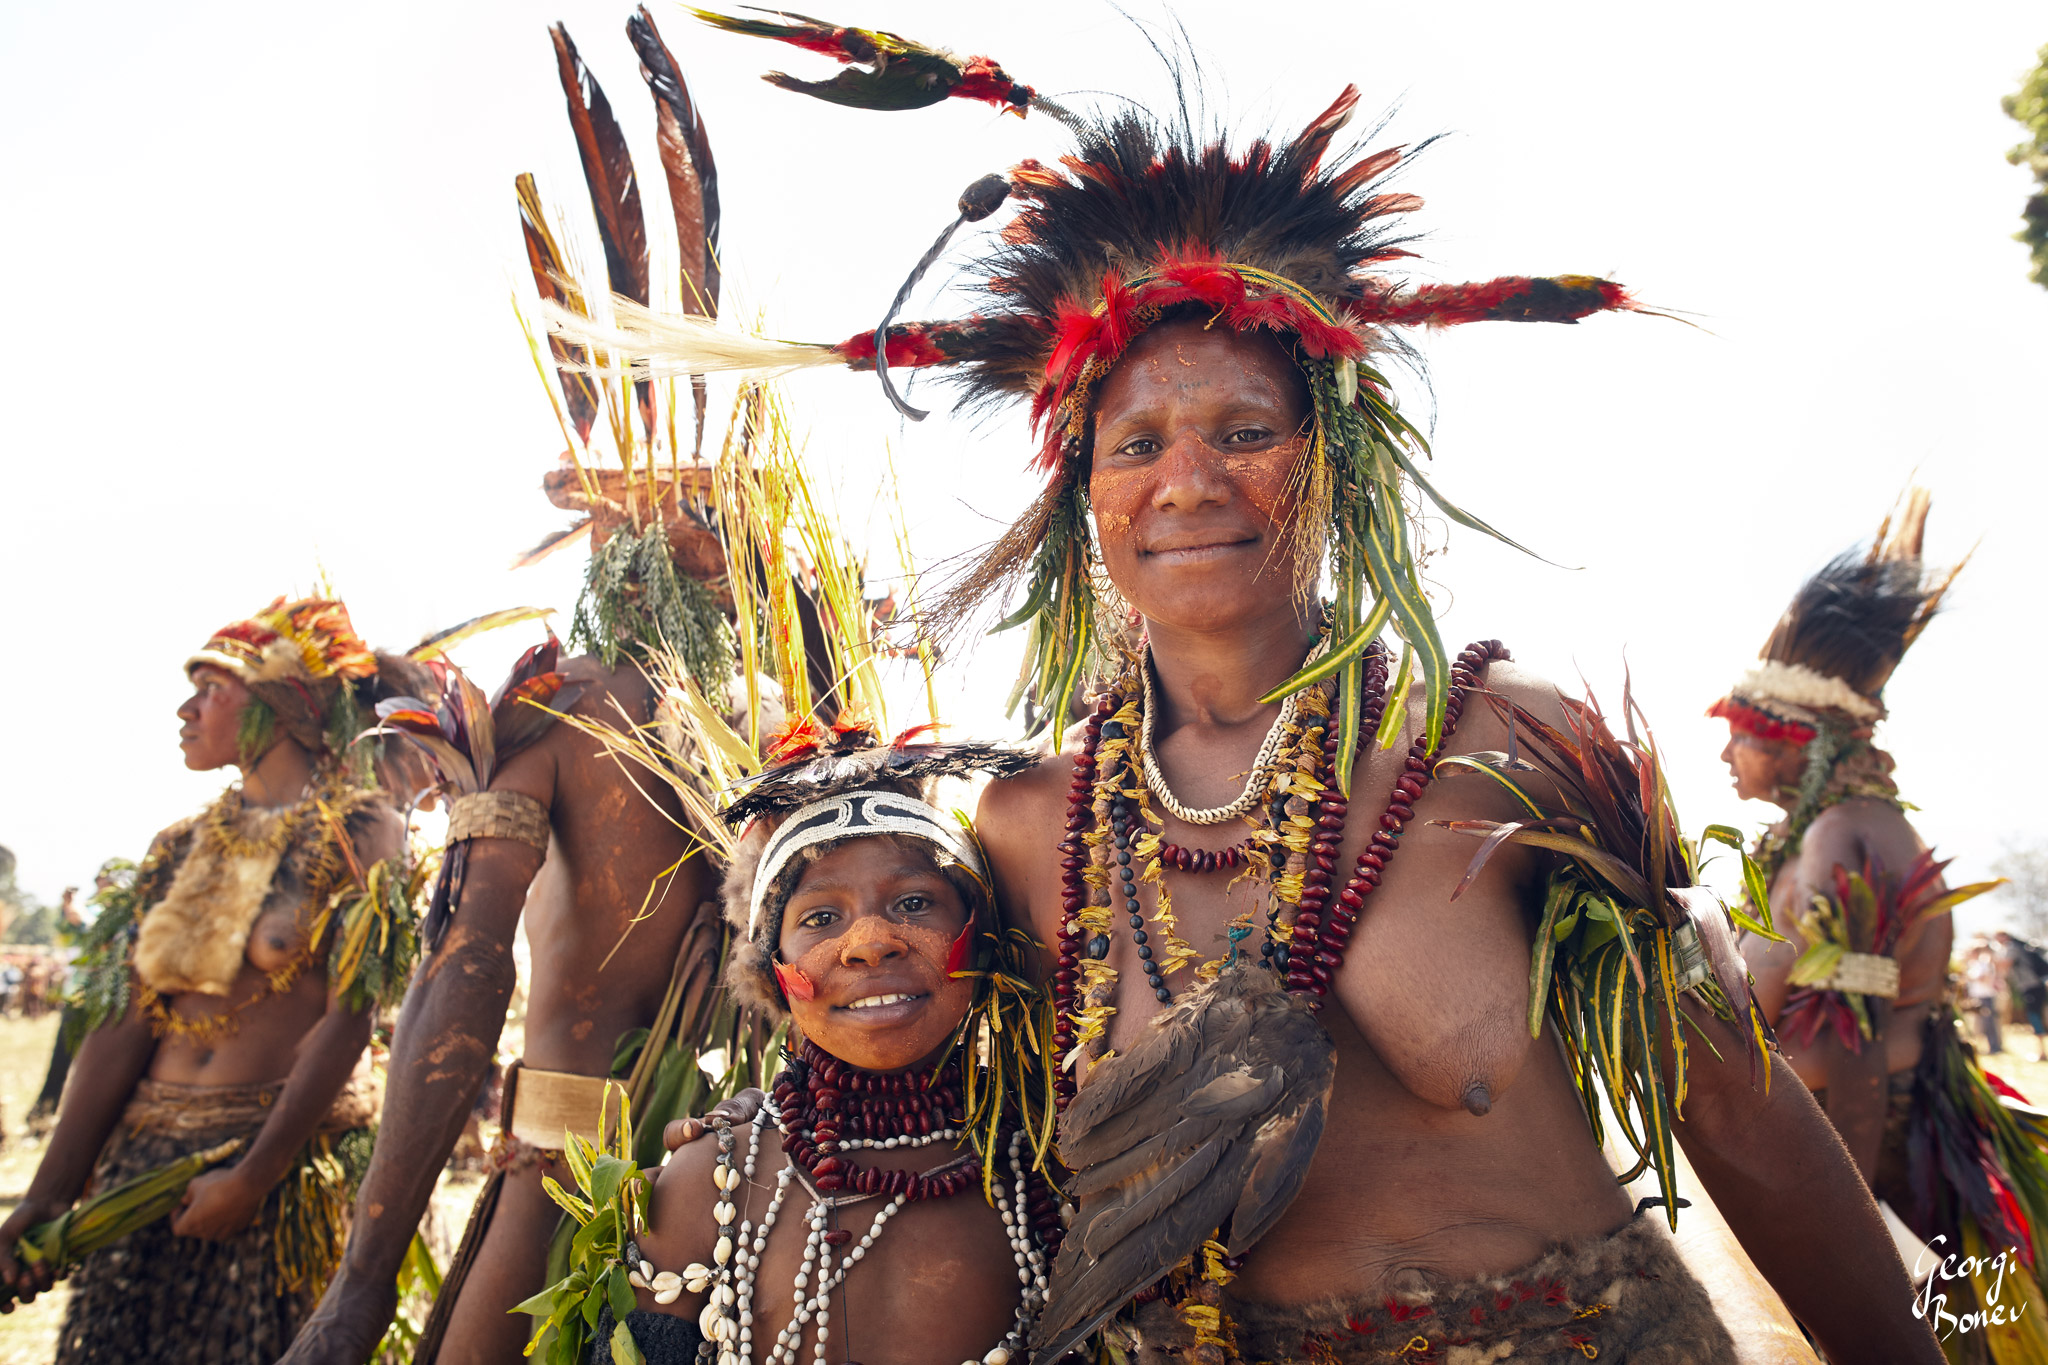 OKIRO AND HER KID ARE ATRIGU MEMBERS IN PAPUA NEW GUINEA